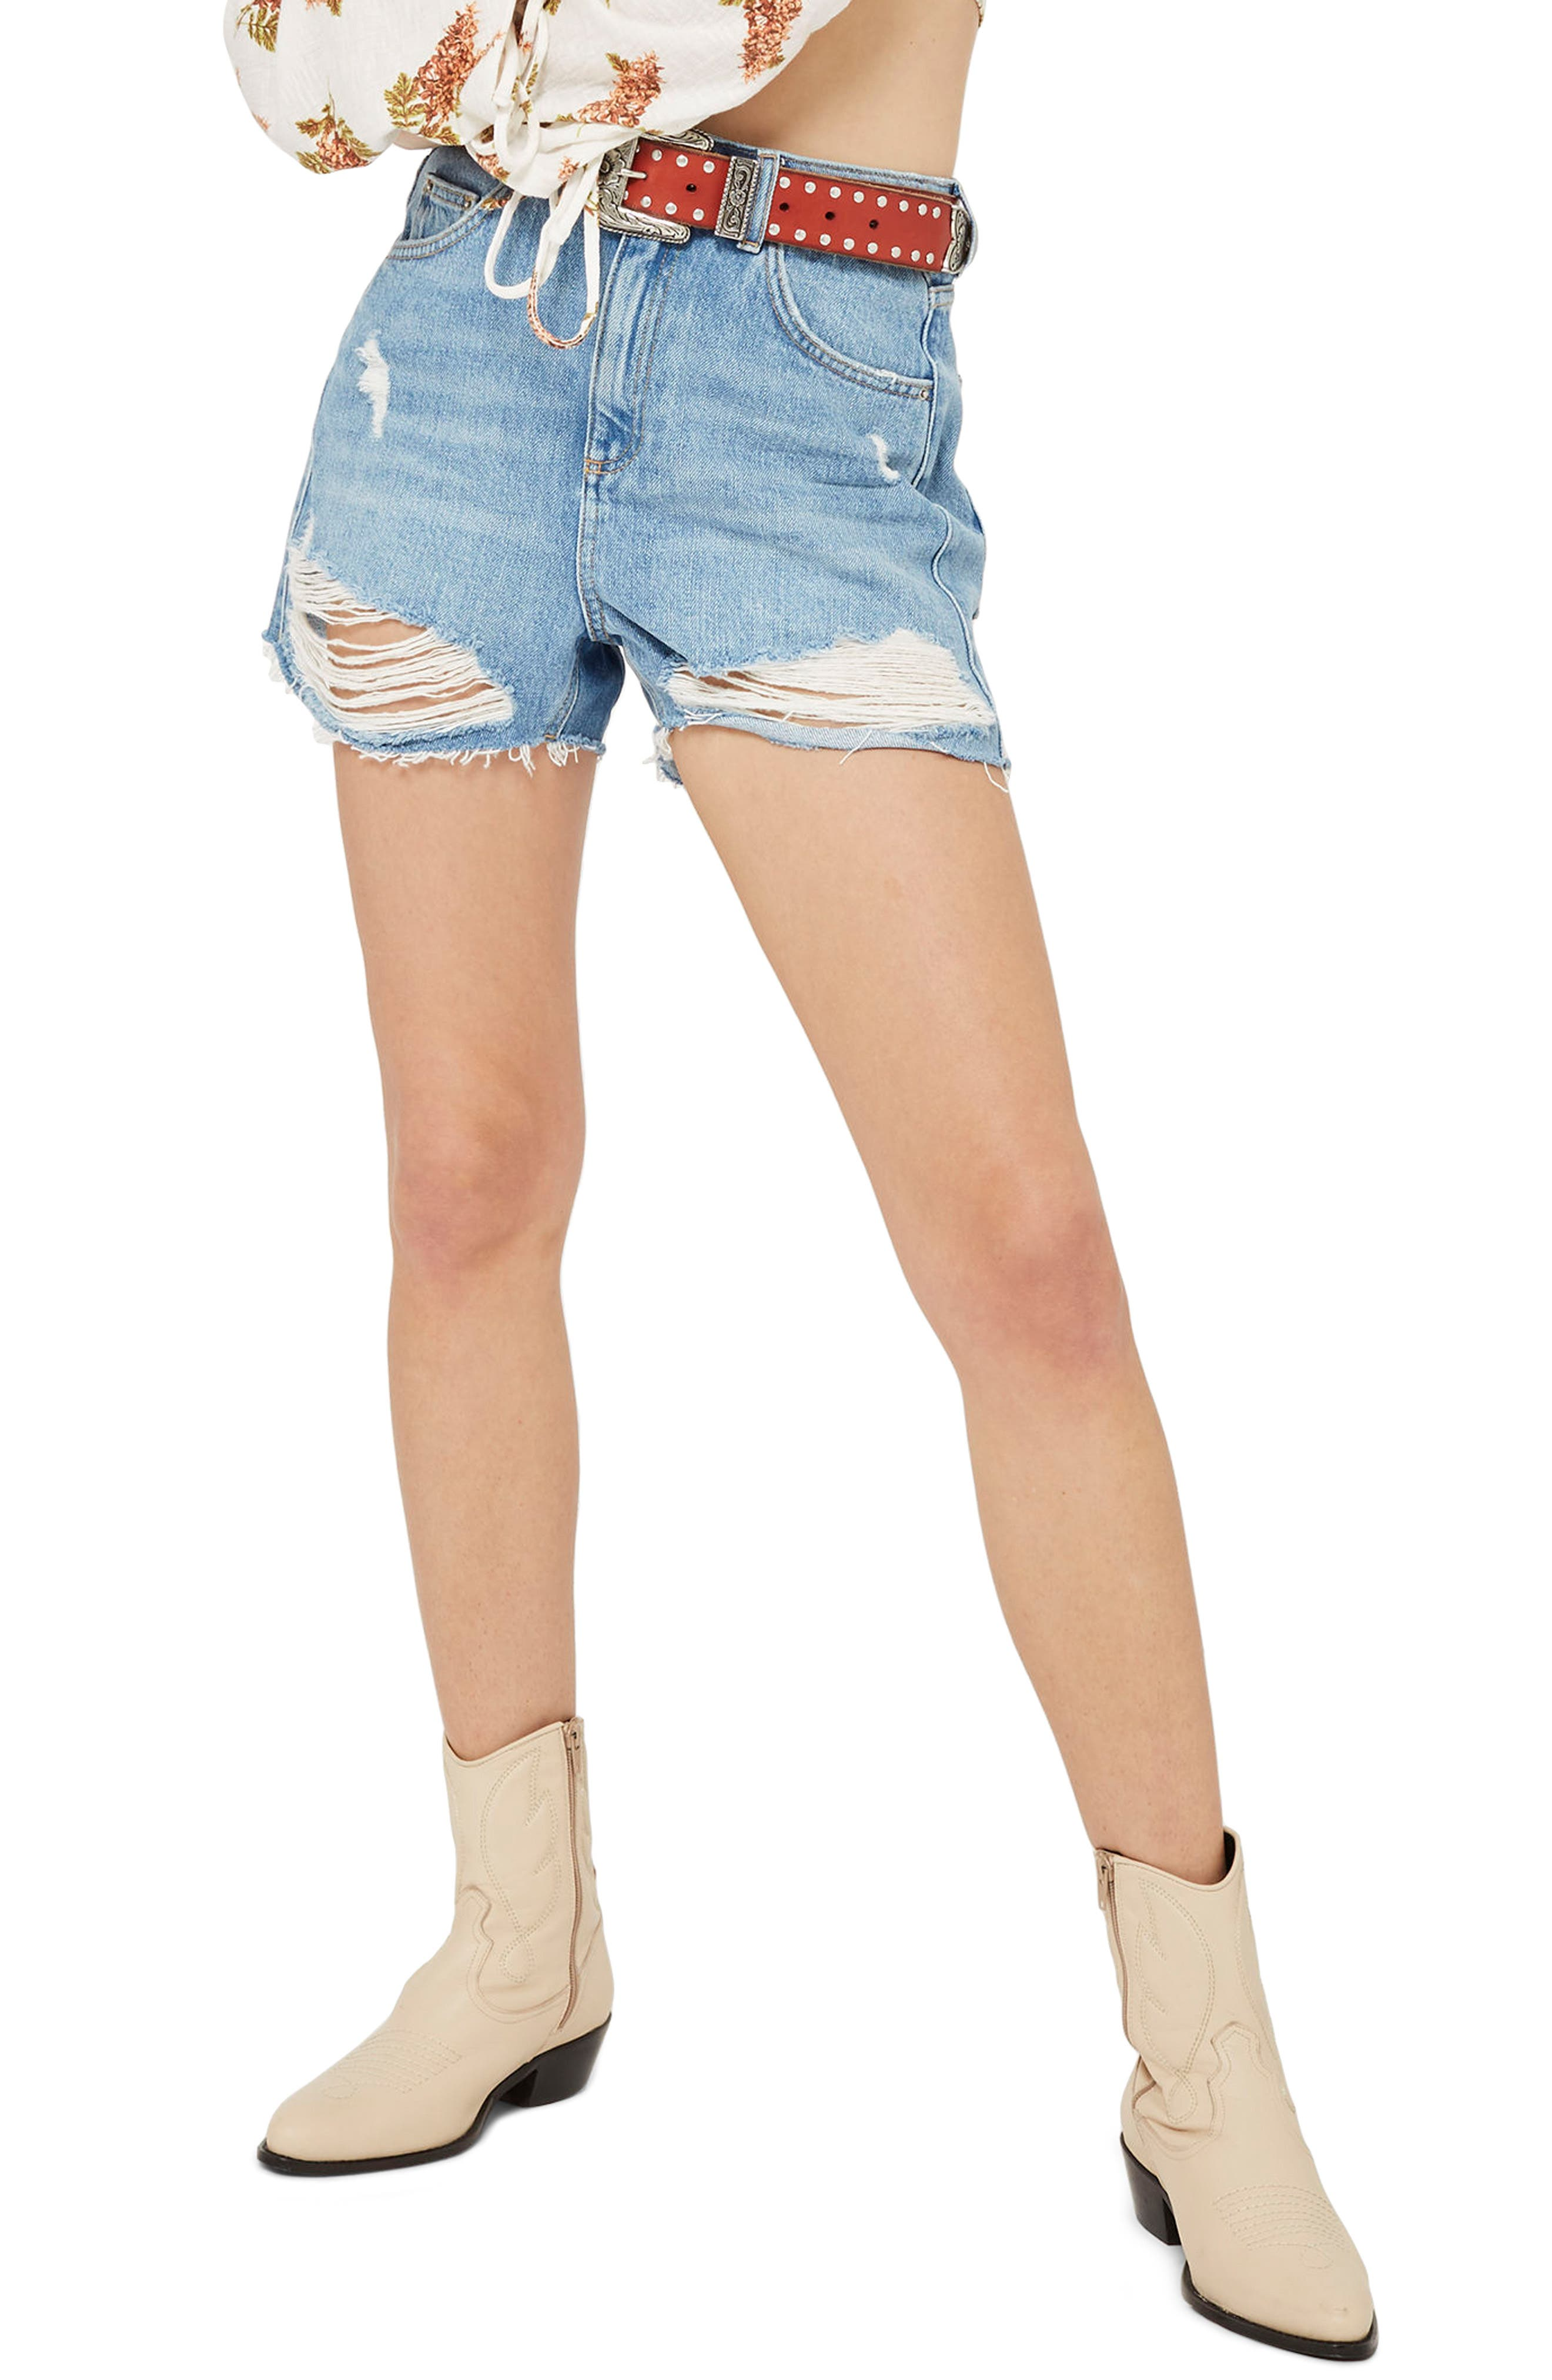 Alternate Image 1 Selected - Topshop Ripped Denim Mom Shorts